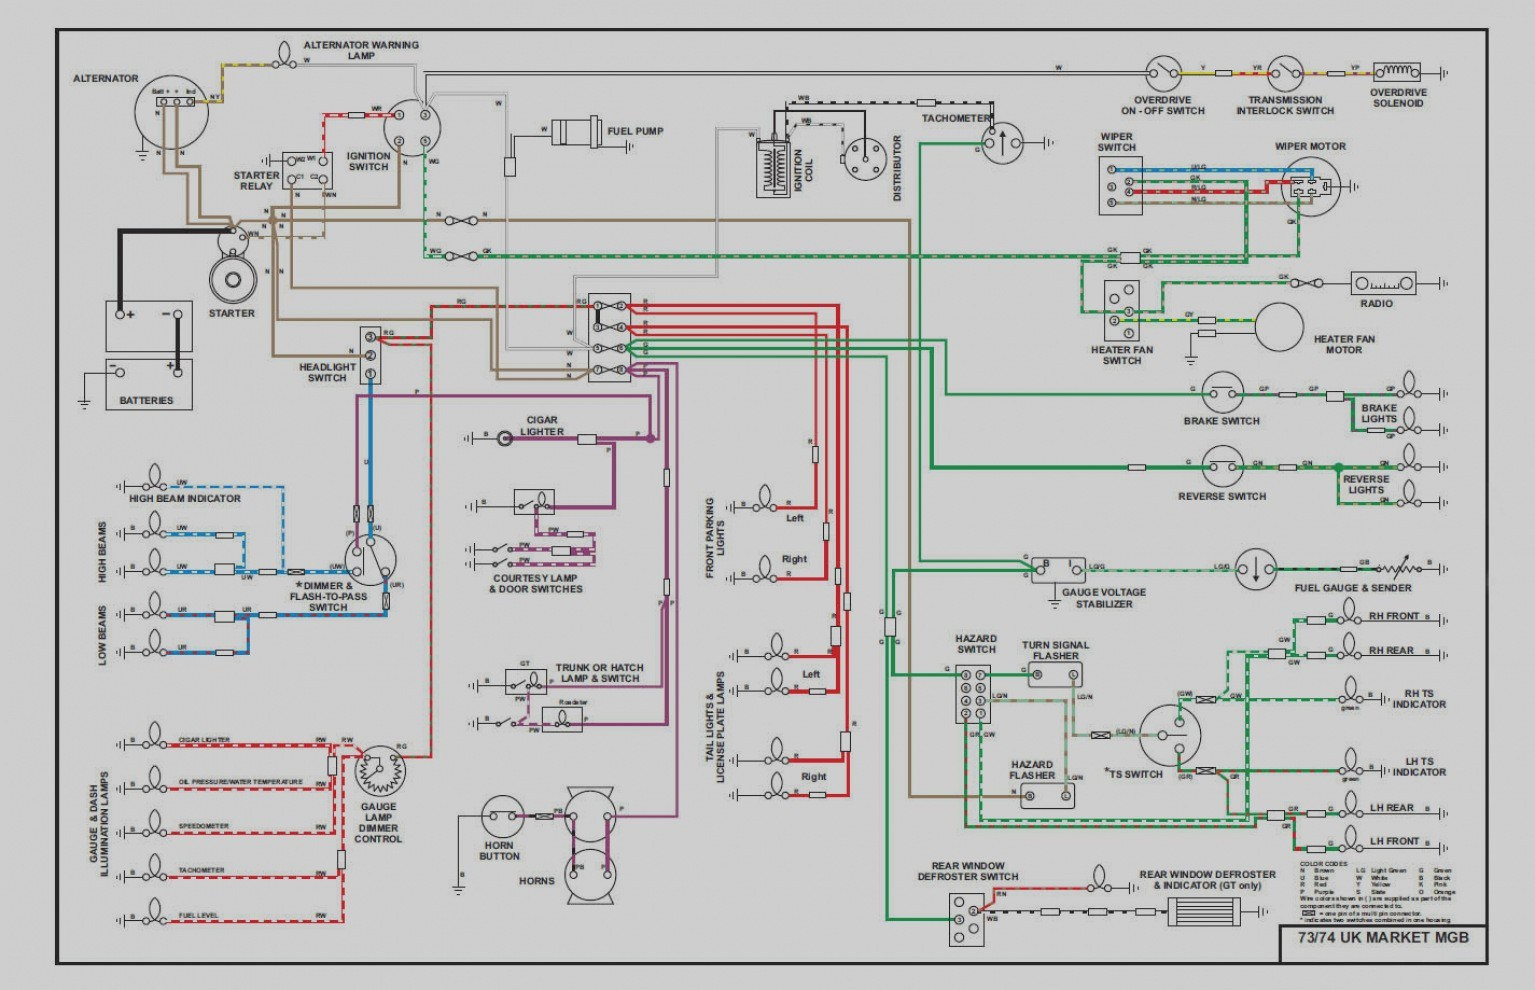 1978 Mgb Wiring Diagram - Oldsmobile Aurora Radio Wiring Diagram for Wiring  Diagram SchematicsWiring Diagram Schematics